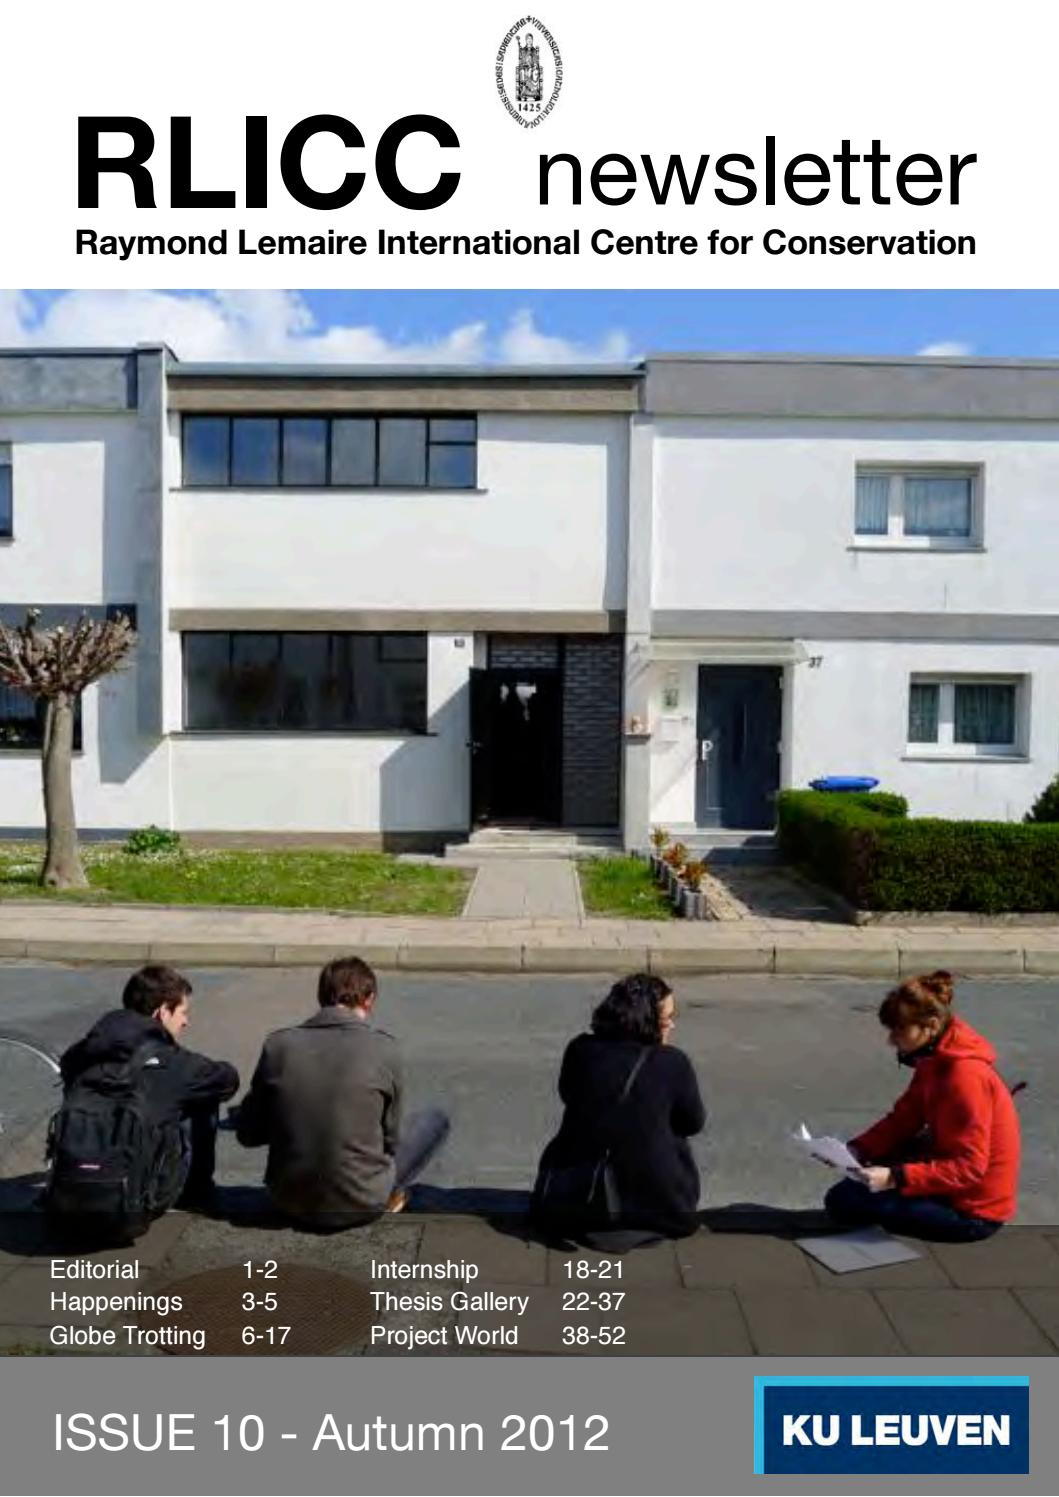 Creer Ilot Central Cuisine ~ Rlicc Newsletter Issue 10 Autumn 2012 By Raymond Lemaire